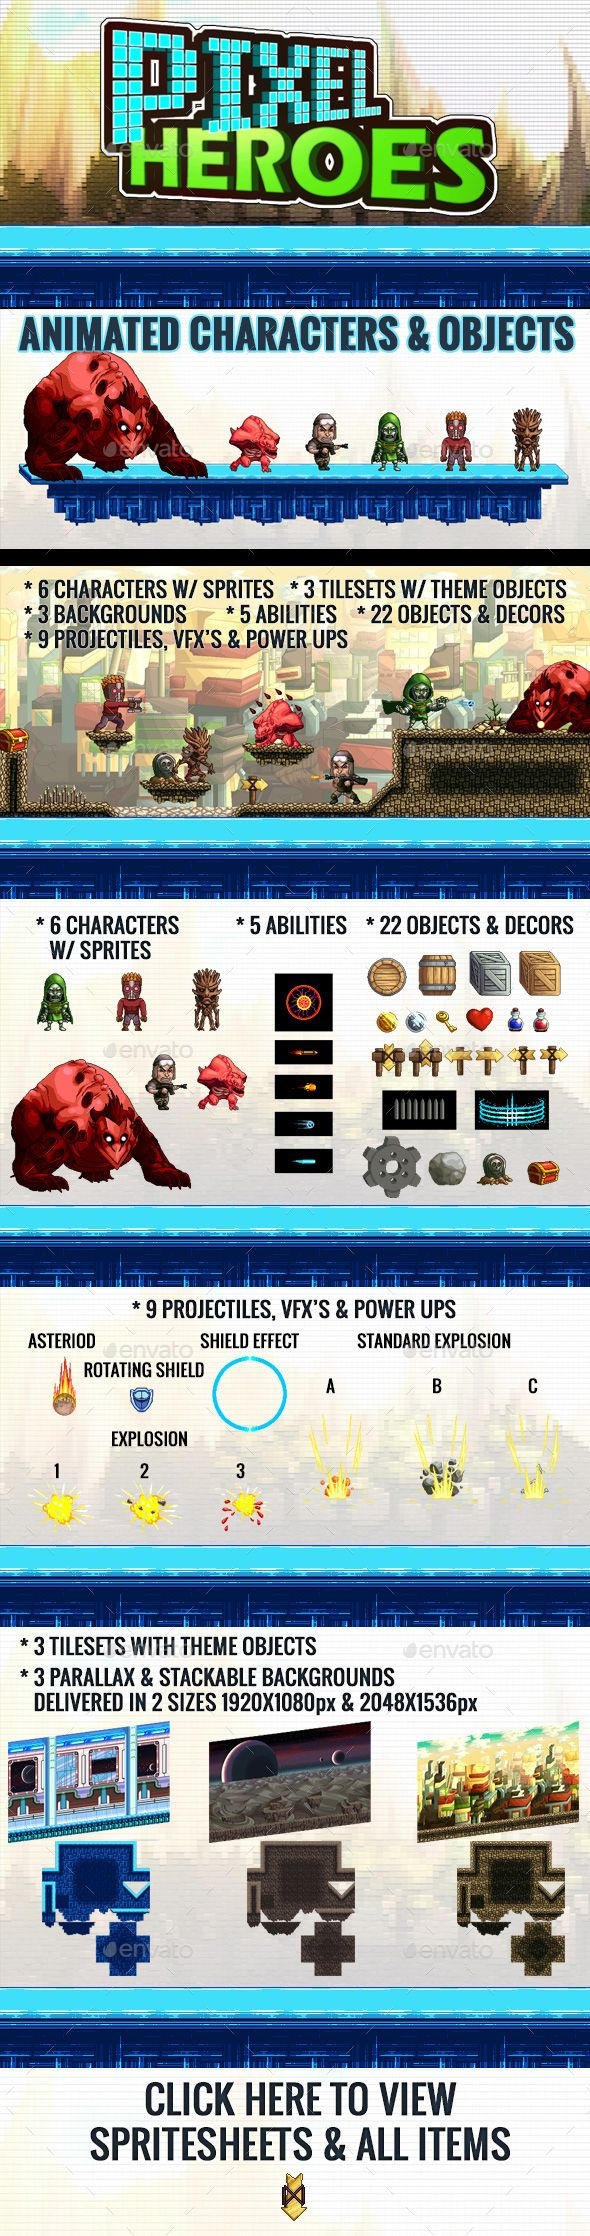 Pixel Heroes Kit 3 - Game Kits Game Asset Design Template PSD. Download here: http://graphicriver.net/item/pixel-heroes-kit-3/16527956?s_rank=504&ref=yinkira